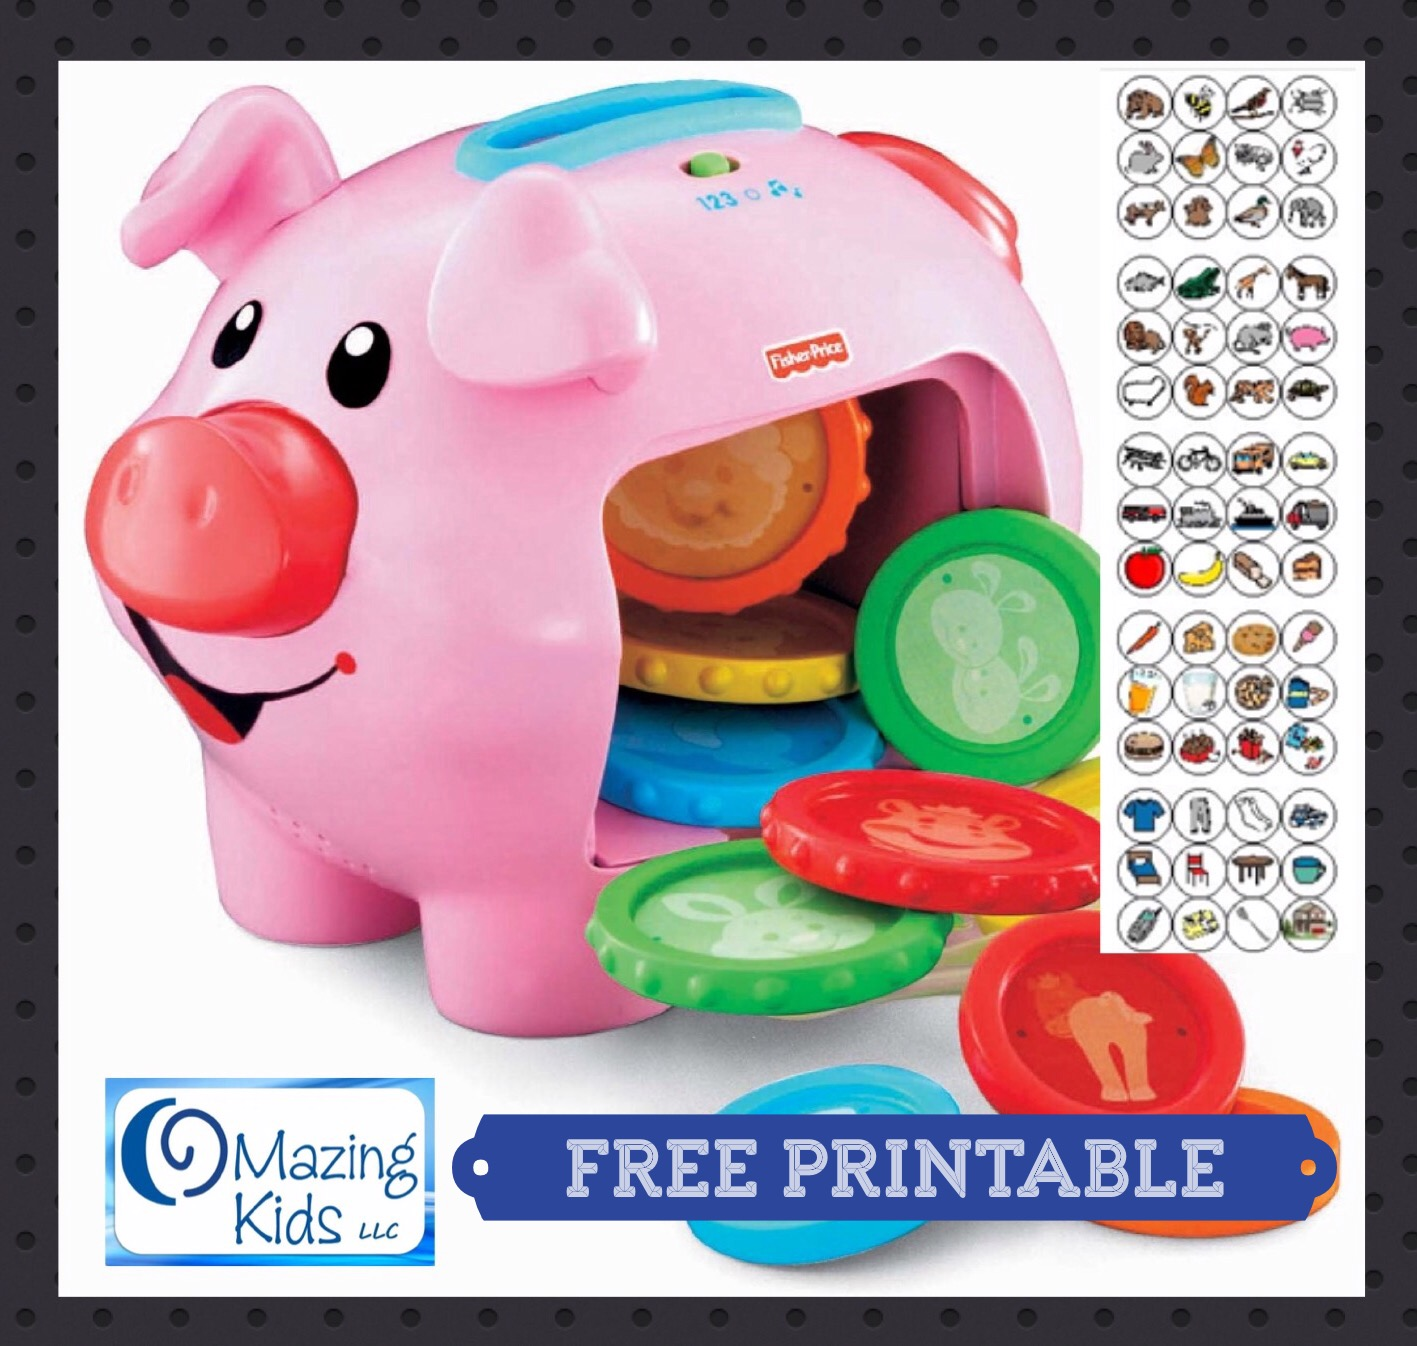 Free Printable 60 Early Vocabulary Cards For The Fisher Price Laugh Learn Piggy Bank Omazing Kids Aac Consulting